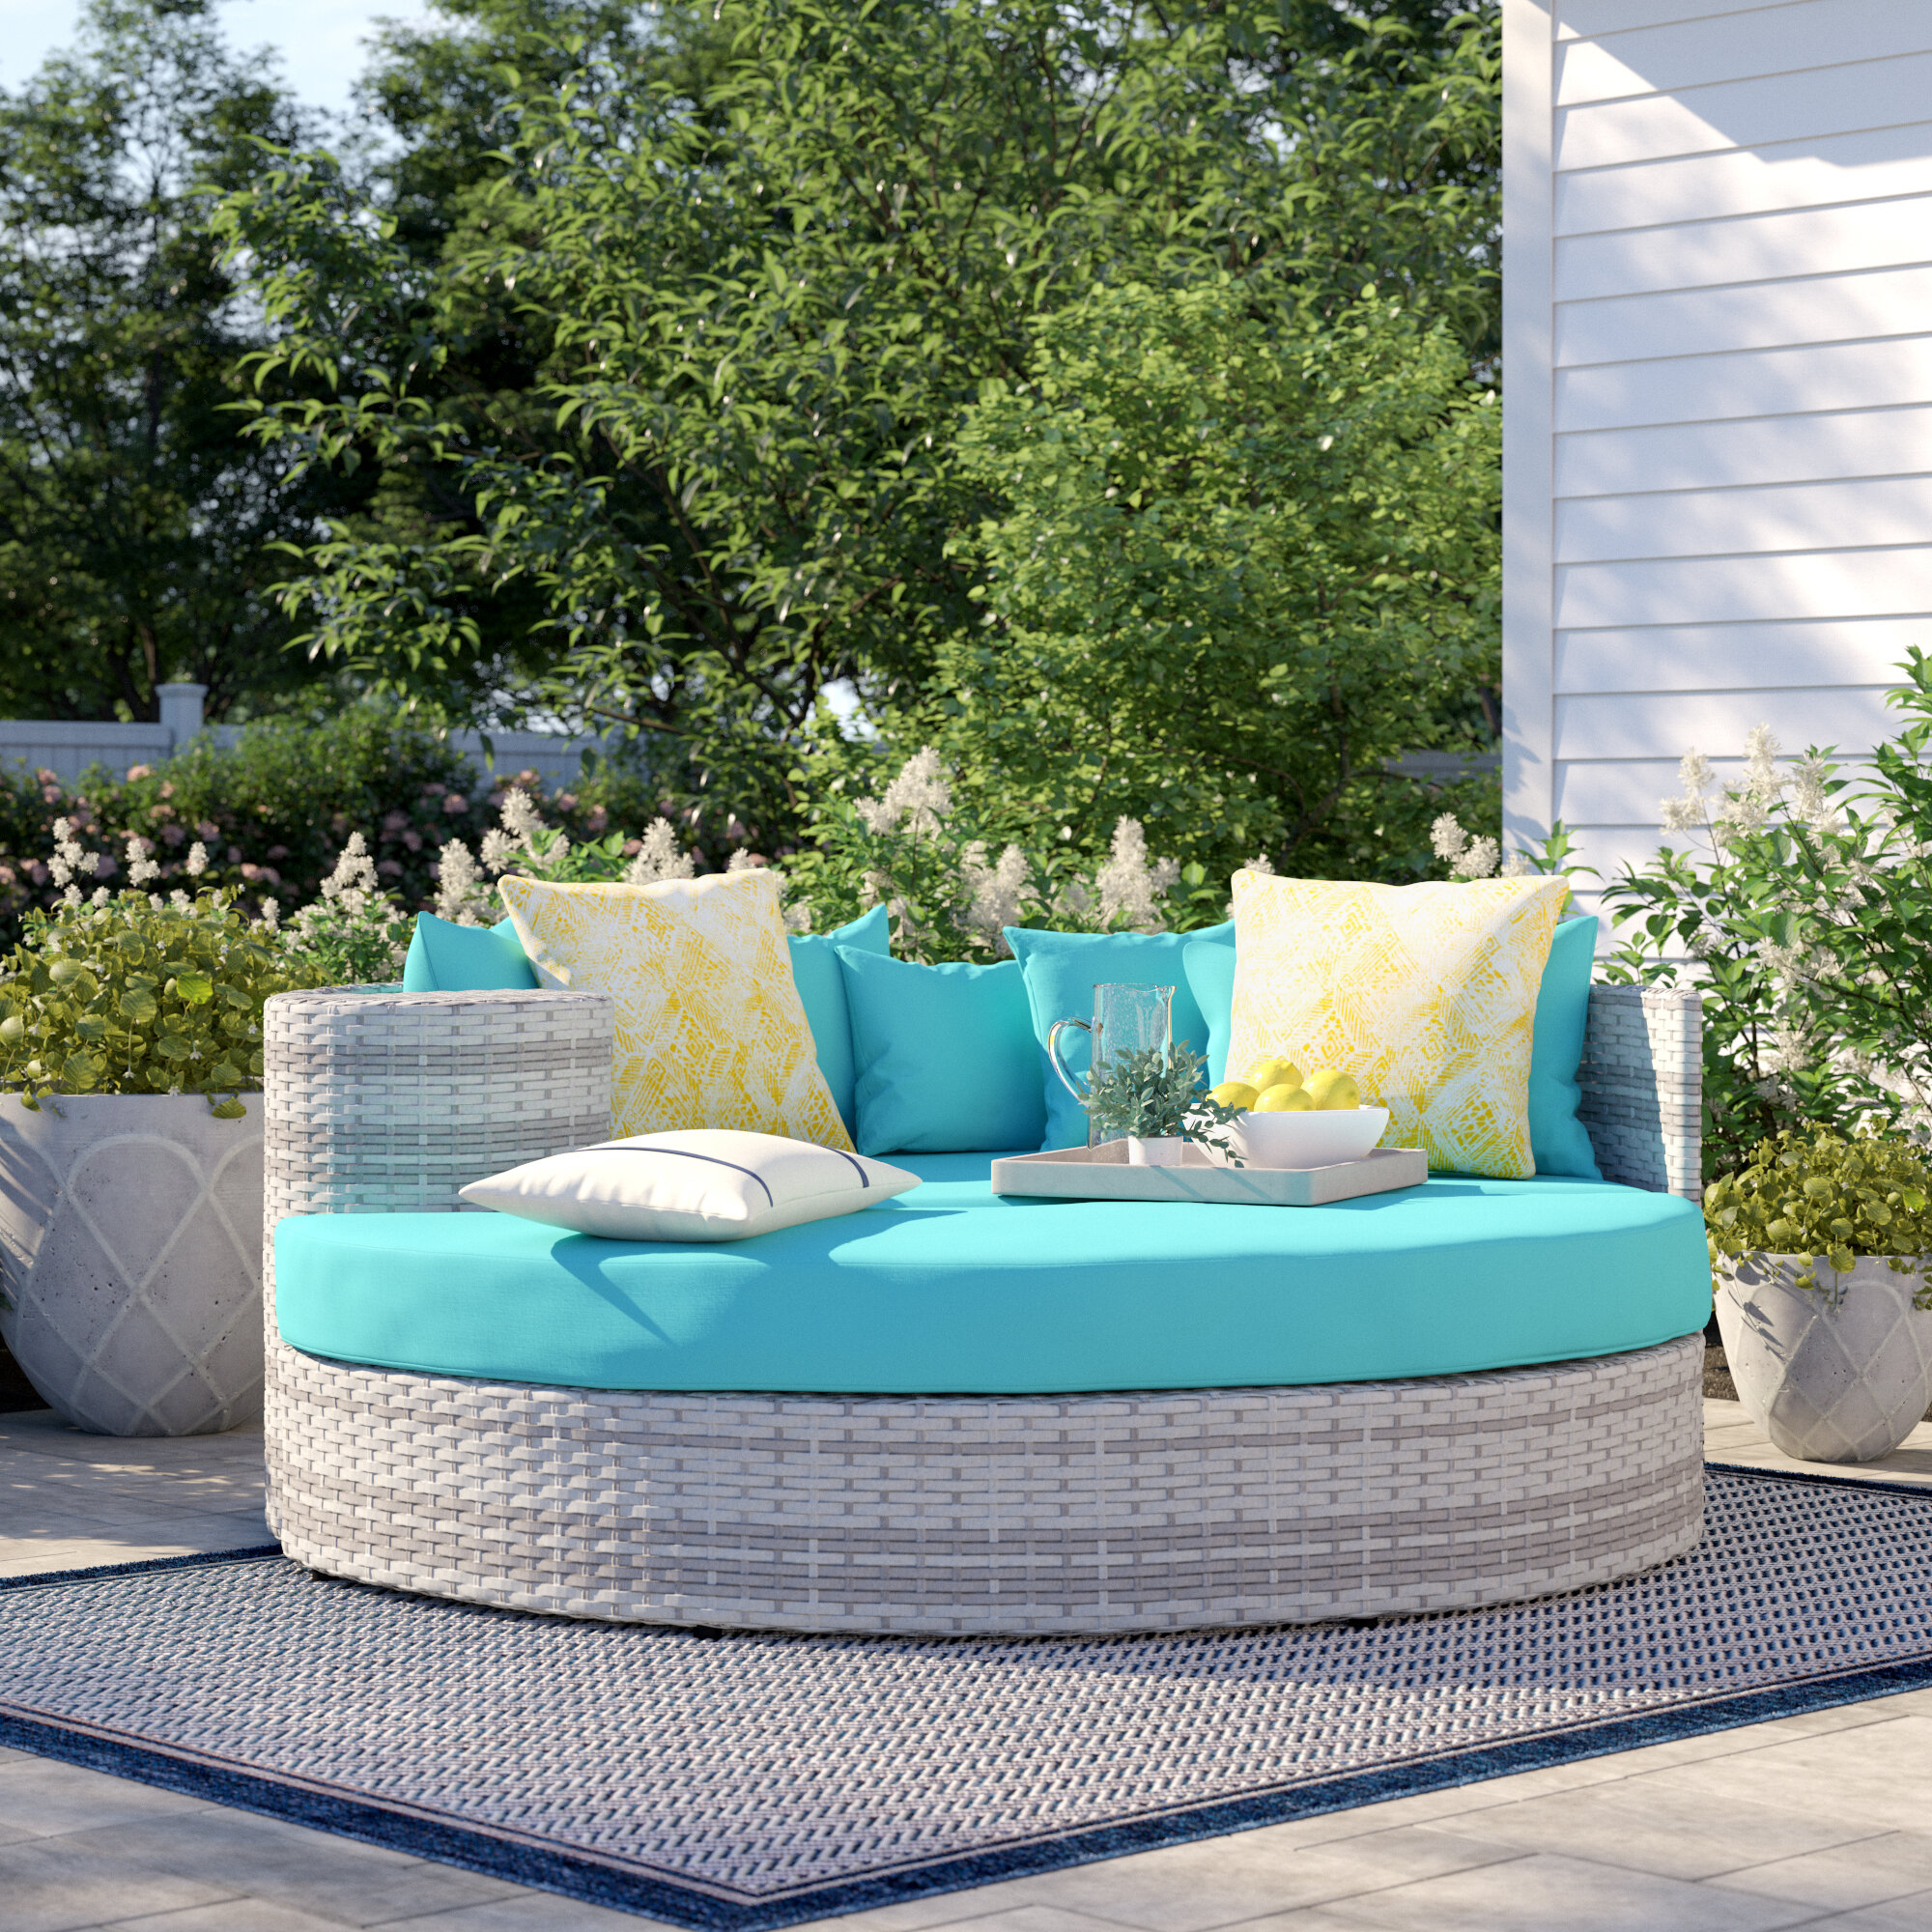 Falmouth Patio Daybeds With Kuddar